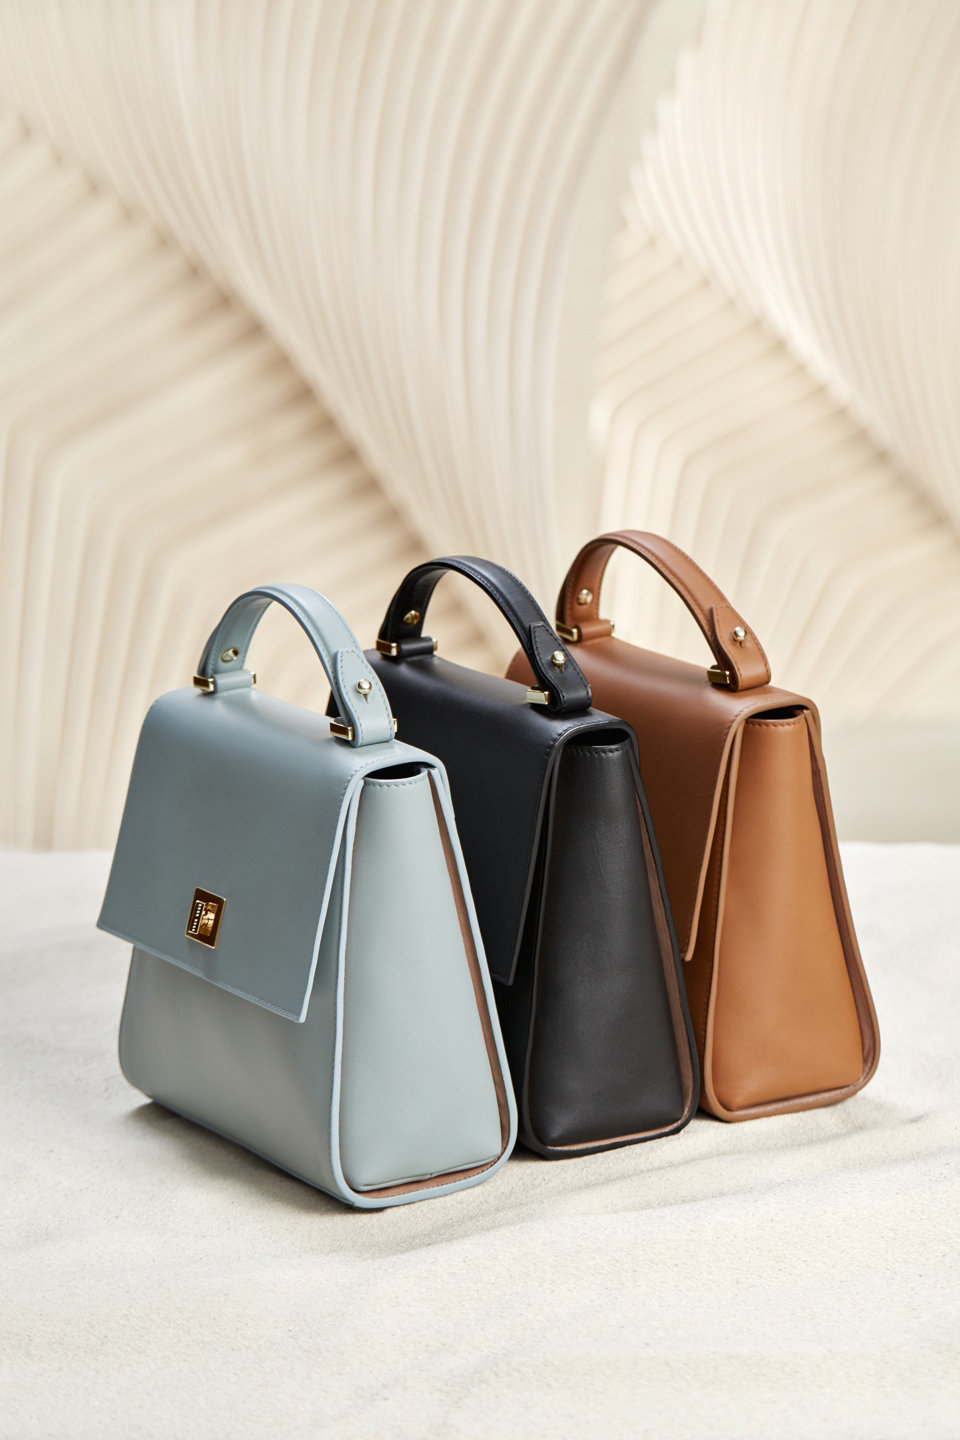 Leather bags in light blue, black and brown by BOSS